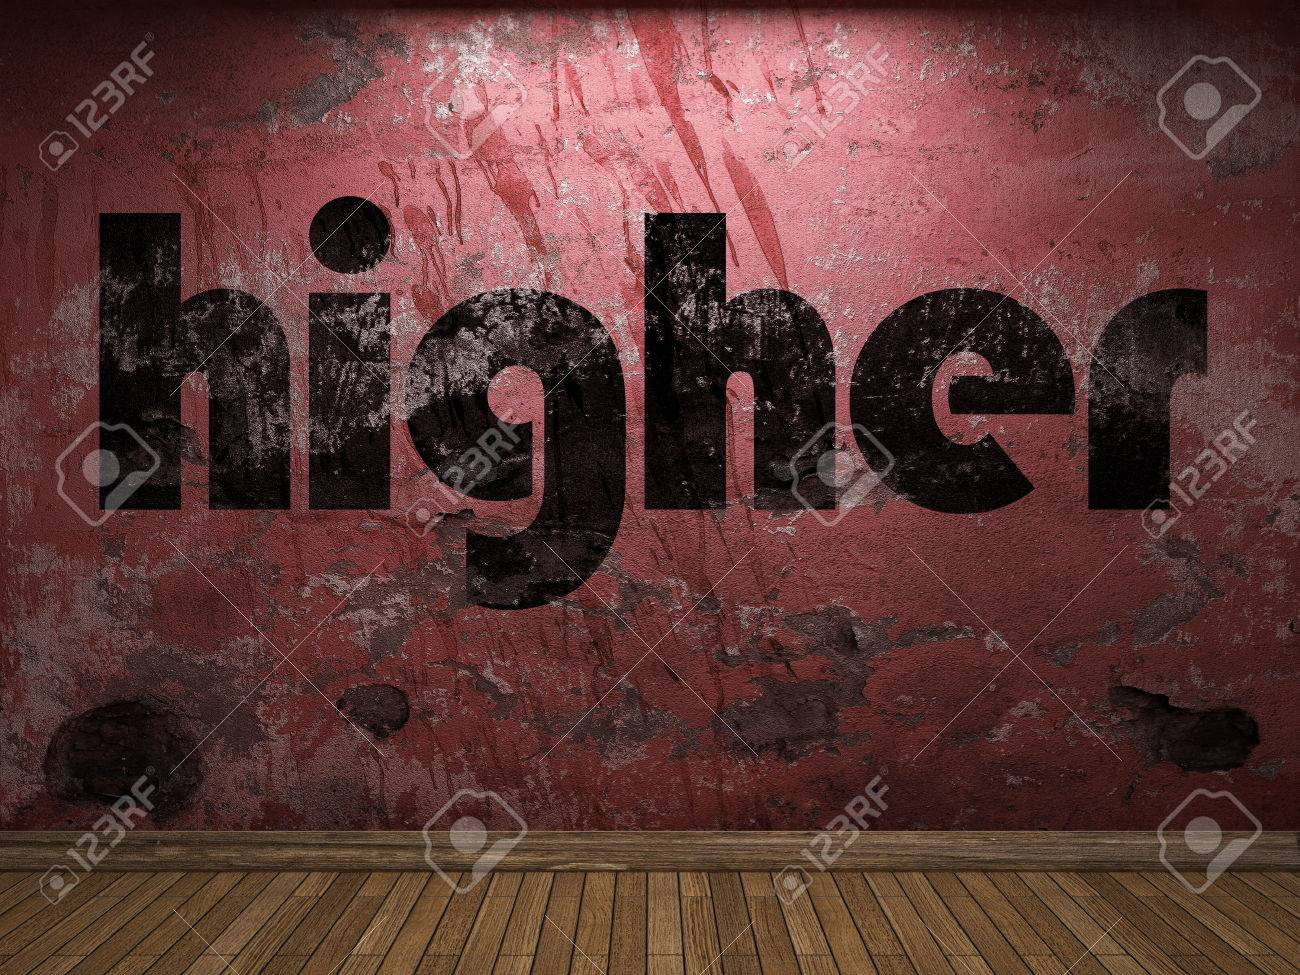 Higher Word On Red Wall Stock Photo, Picture And Royalty Free ...